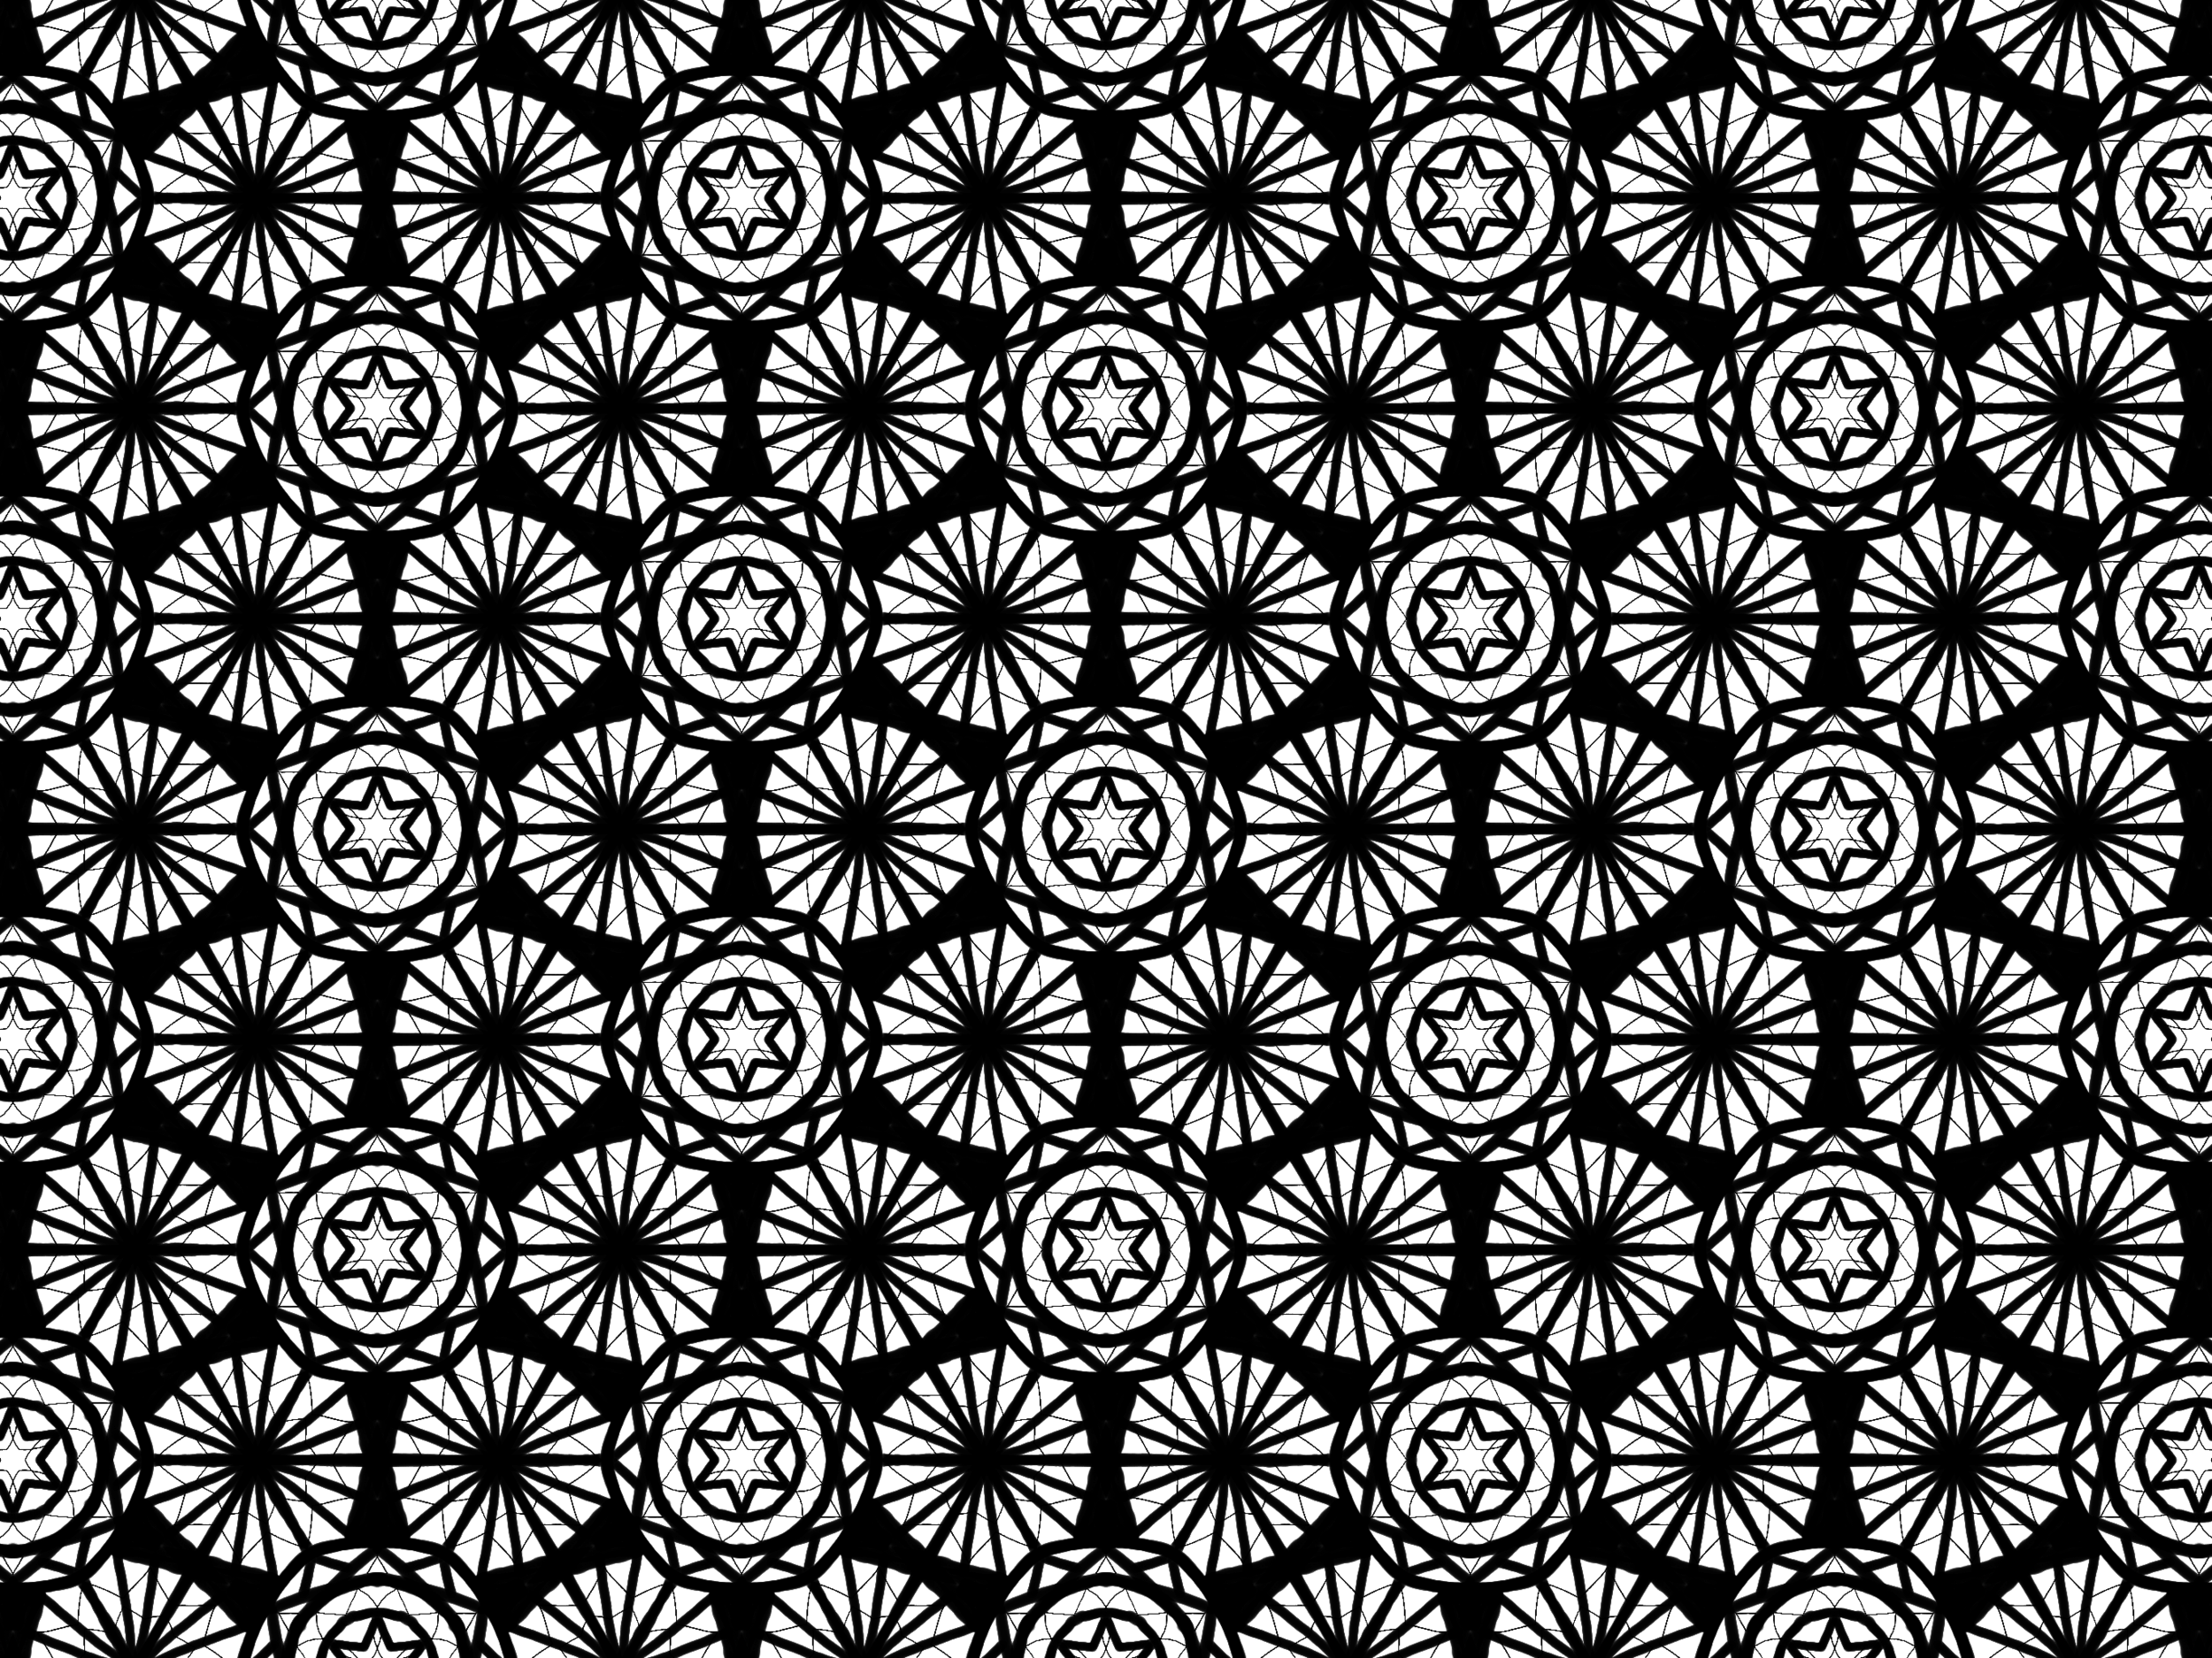 PNG image-DF811BF1383A-1.png